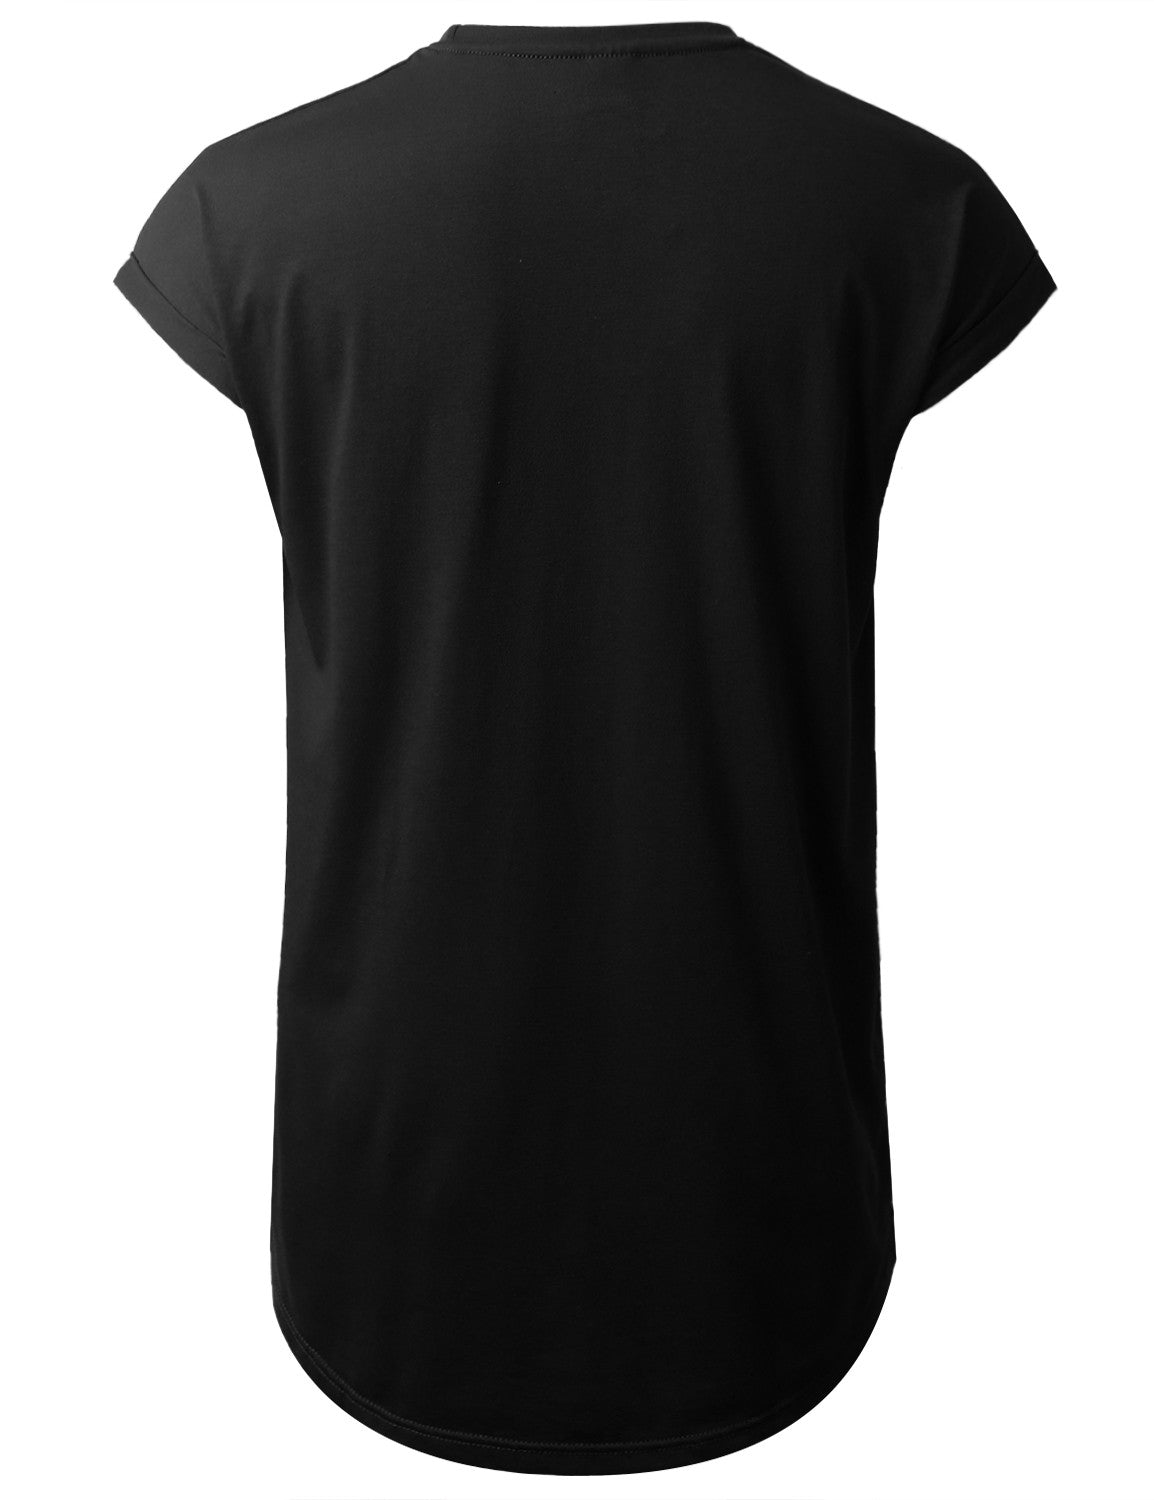 BLACK Drop Shoulder Longline T-shirt - URBANCREWS